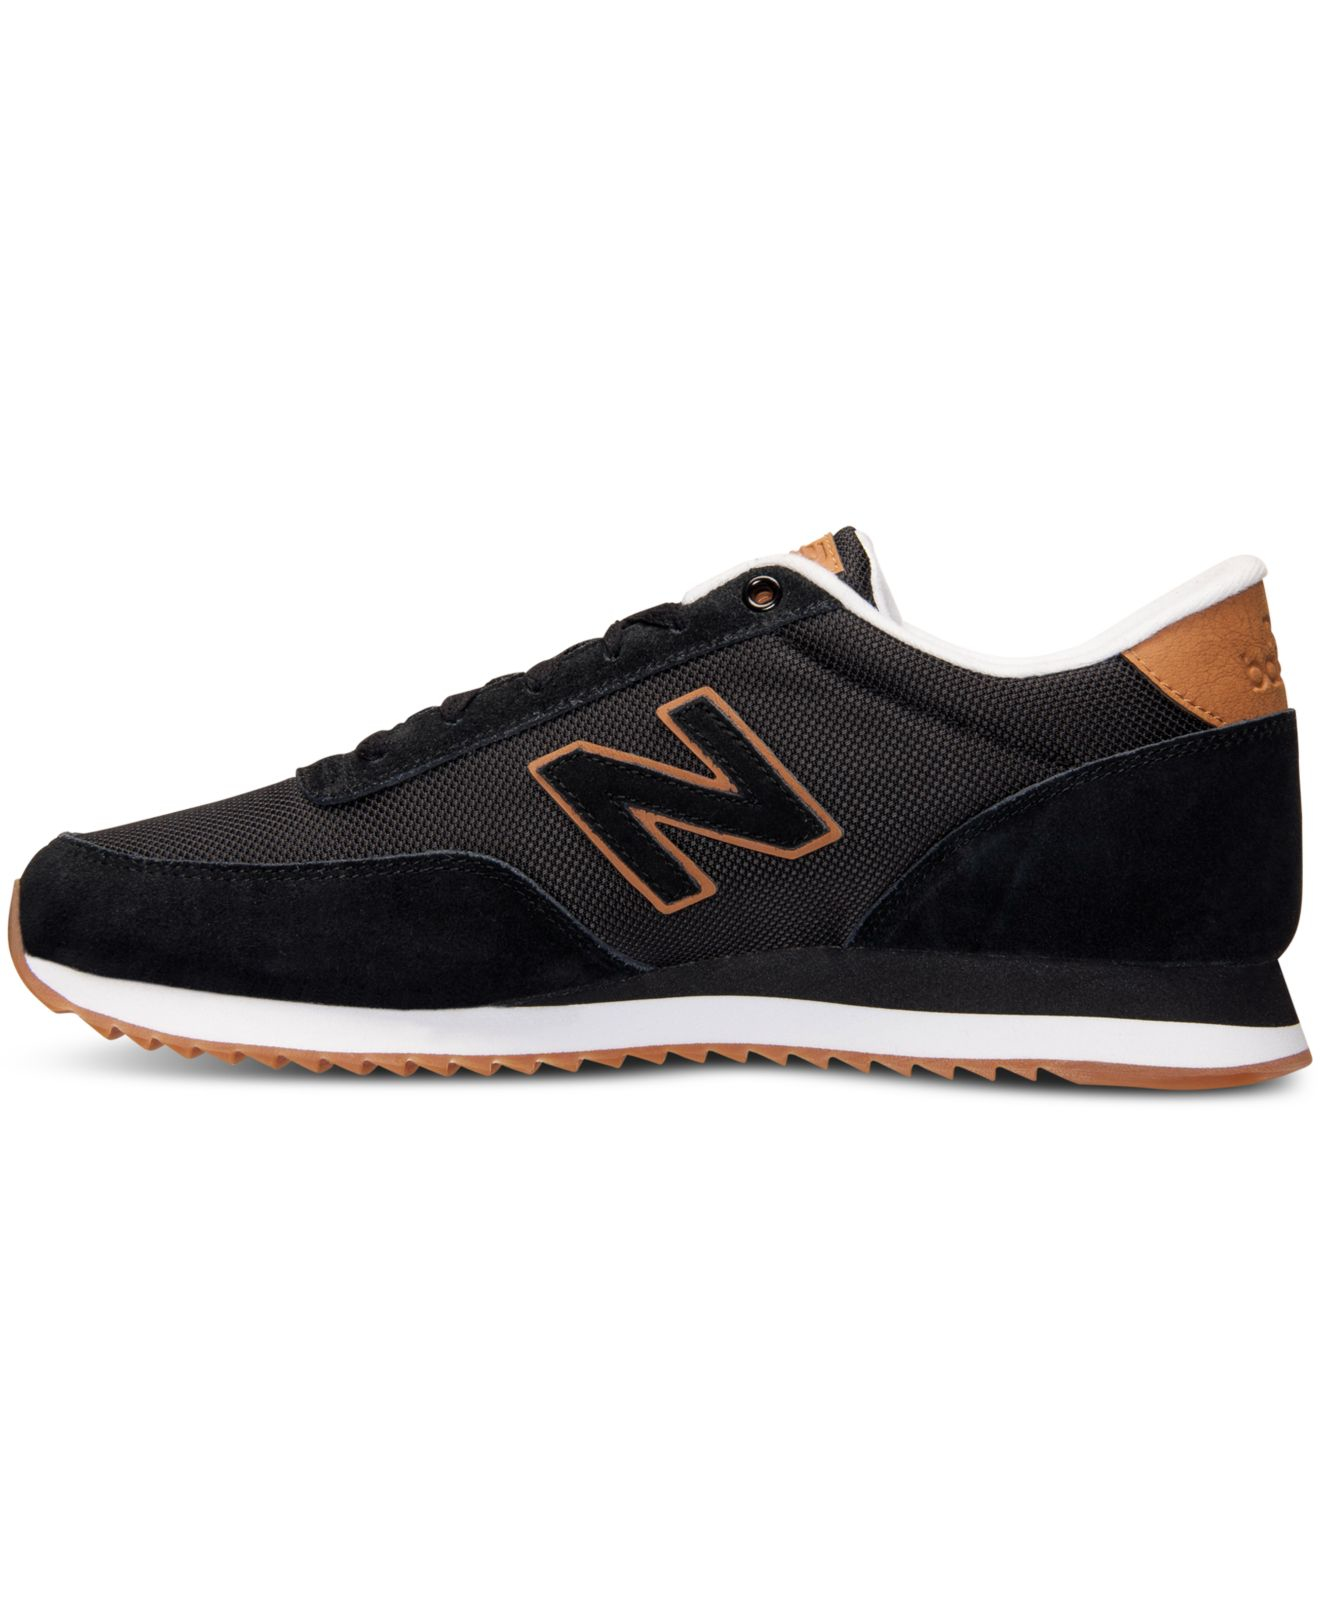 new balance s 501 ripple sole casual sneakers from